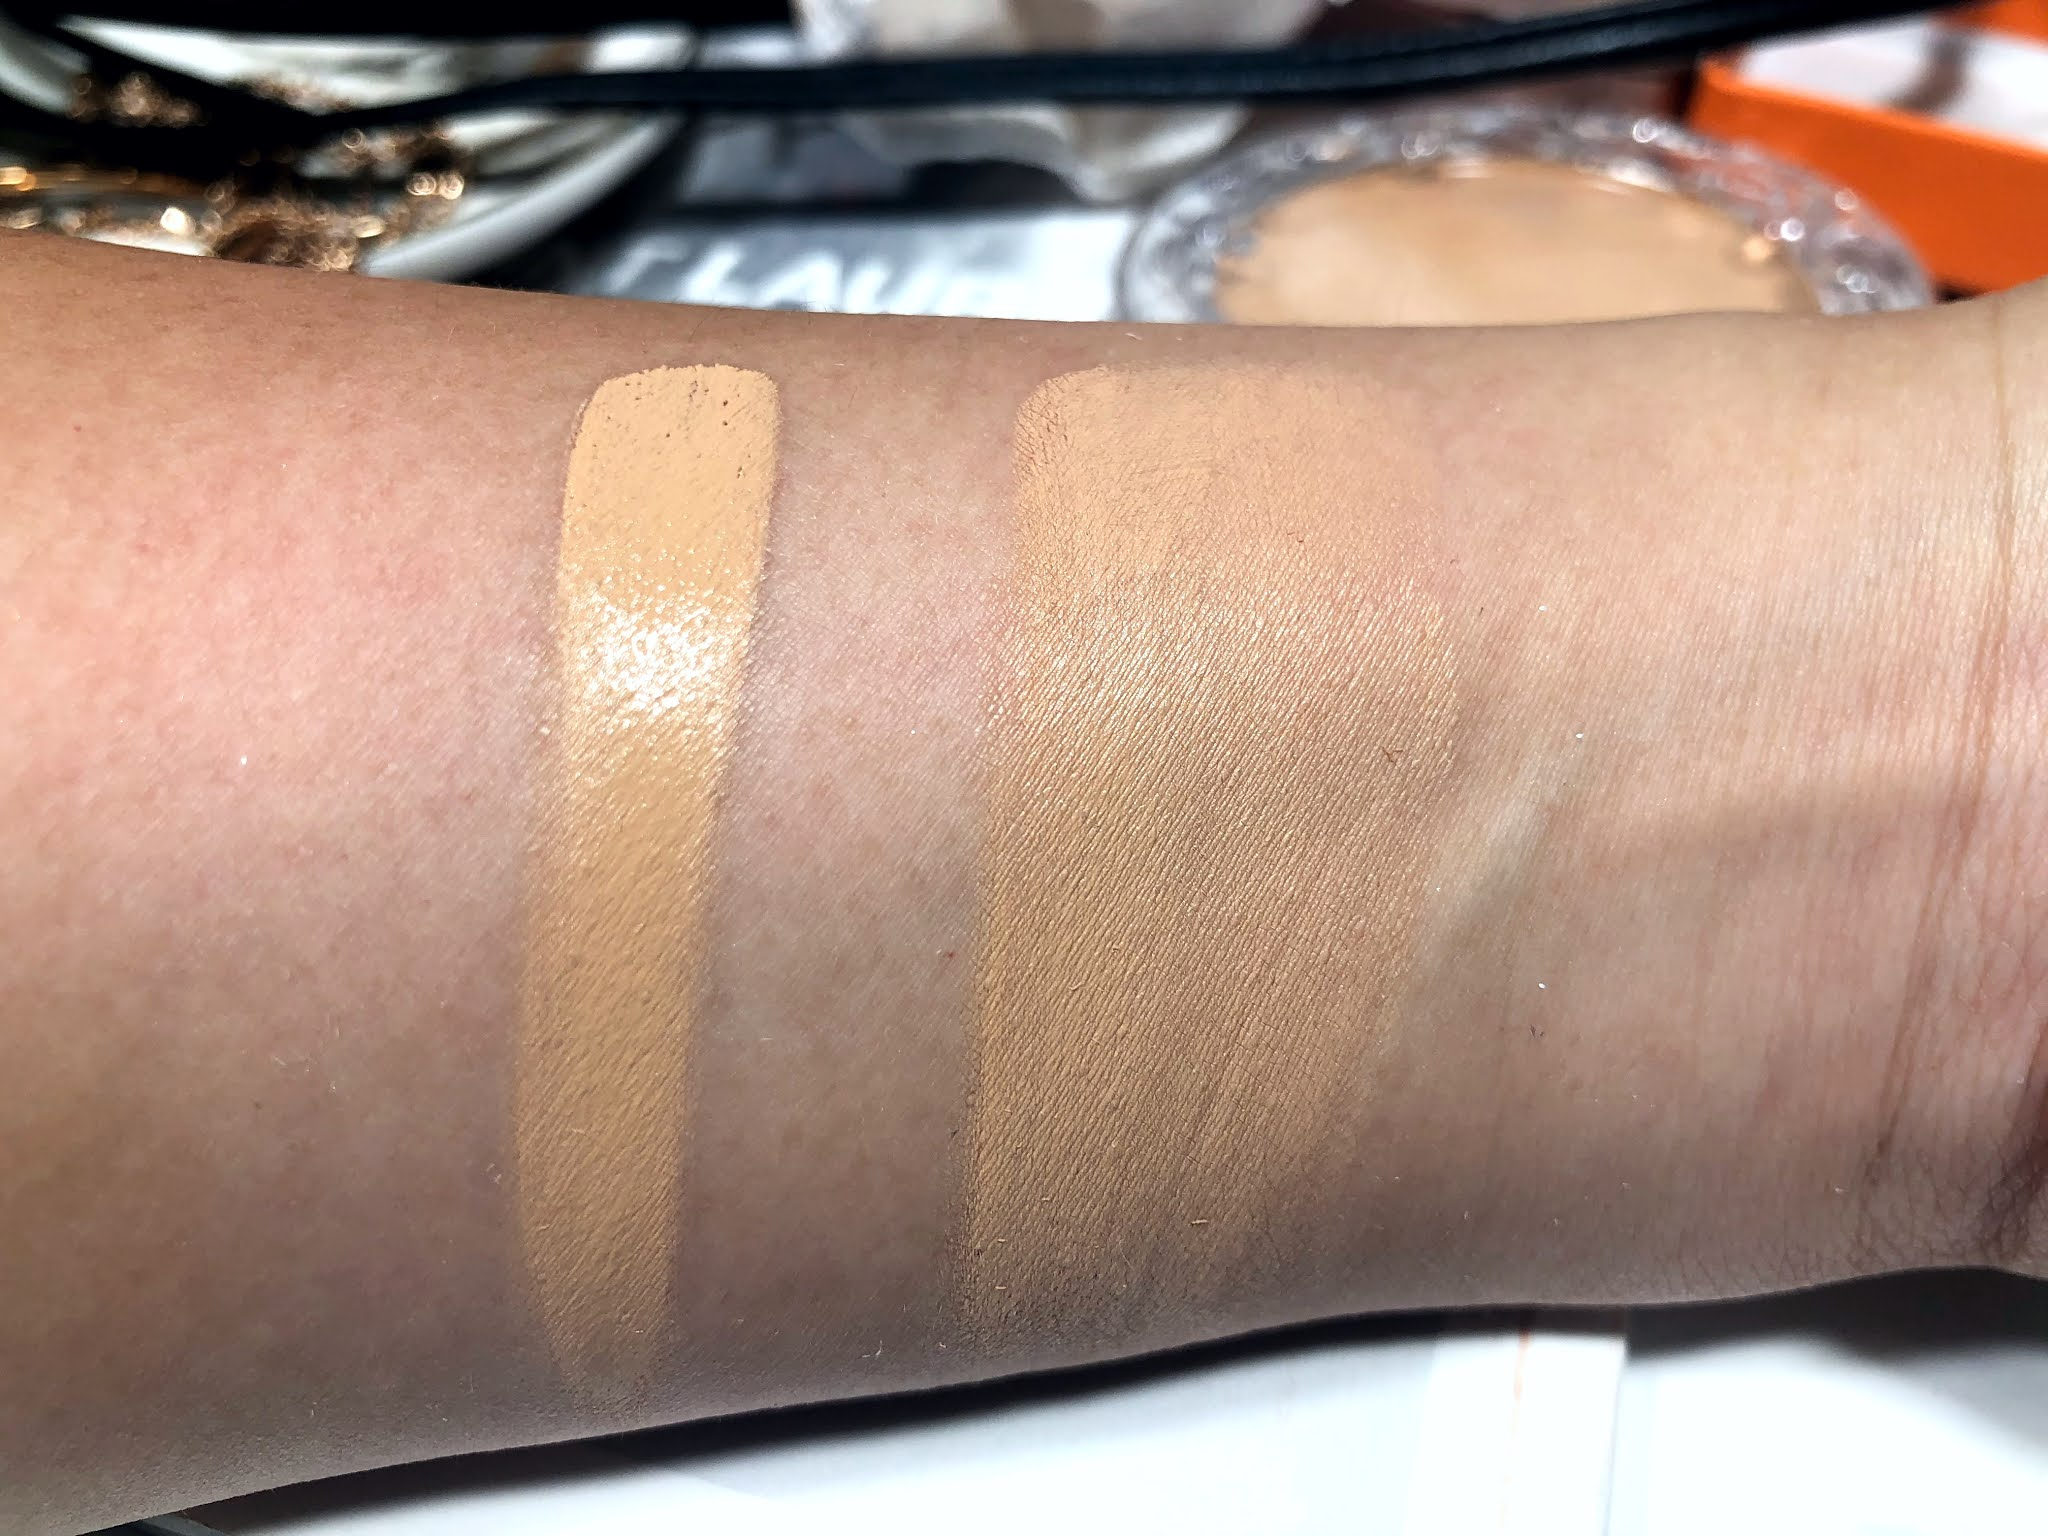 KVD Beauty Good Apple Skin-Perfecting Hydrating Foundation Balm Review and Swatches